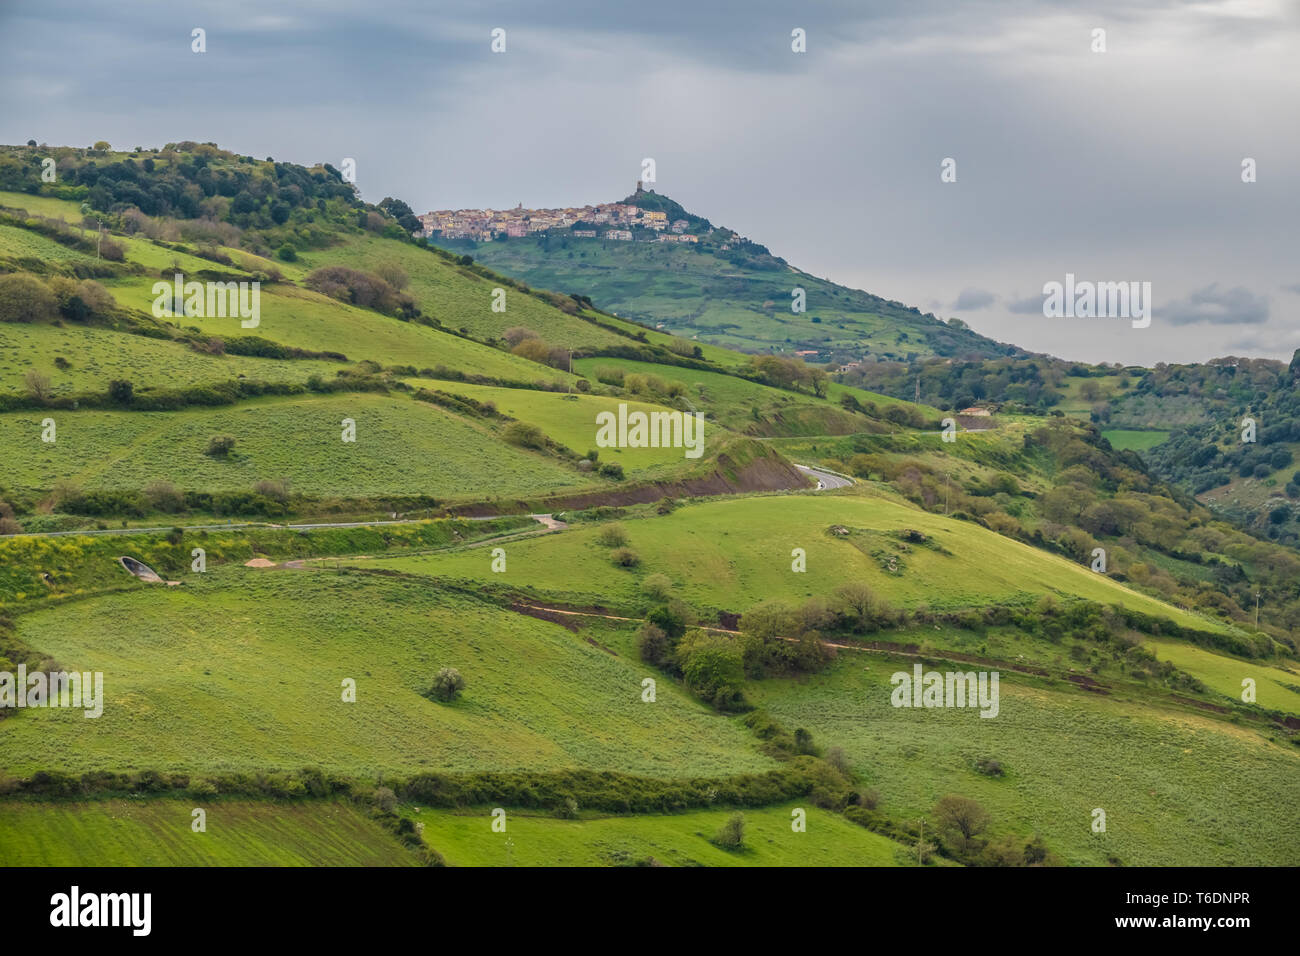 Rural landscapes and scenes from the inner countryside of northern Sardinia, Italy. - Stock Image